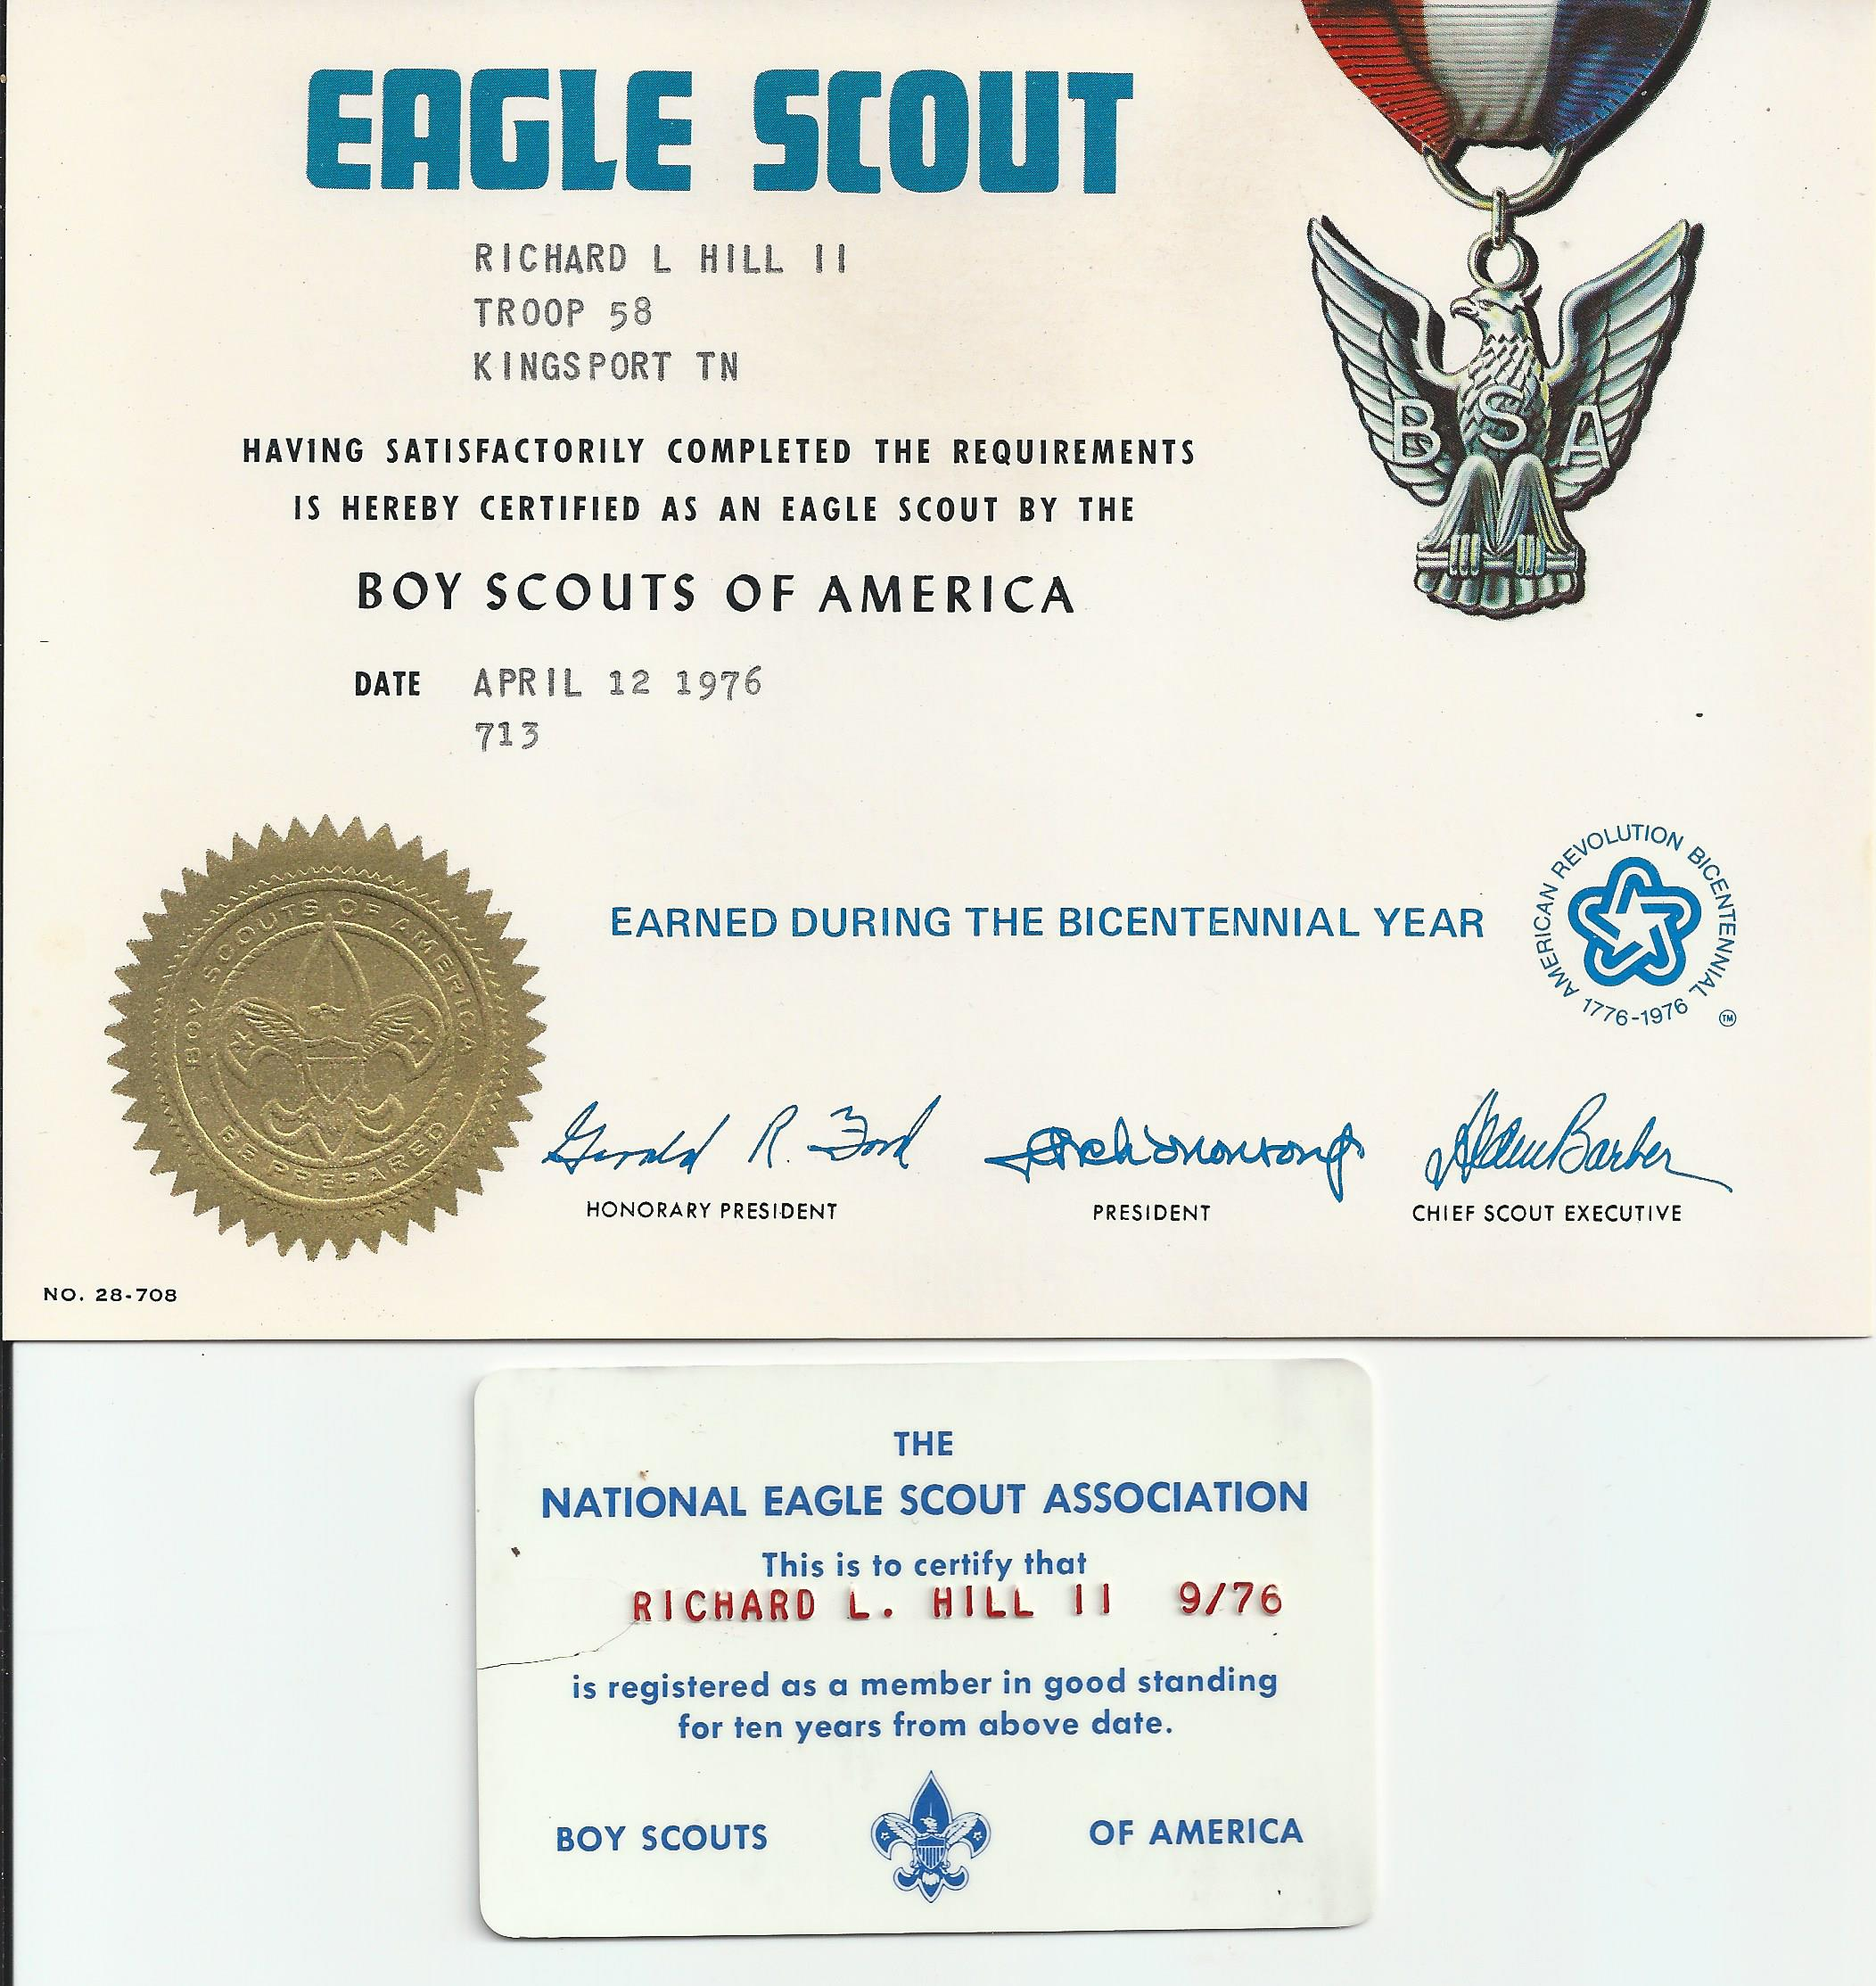 Navy rotc scholarship a new journey 1976 eagle scout award certificate with card xflitez Gallery